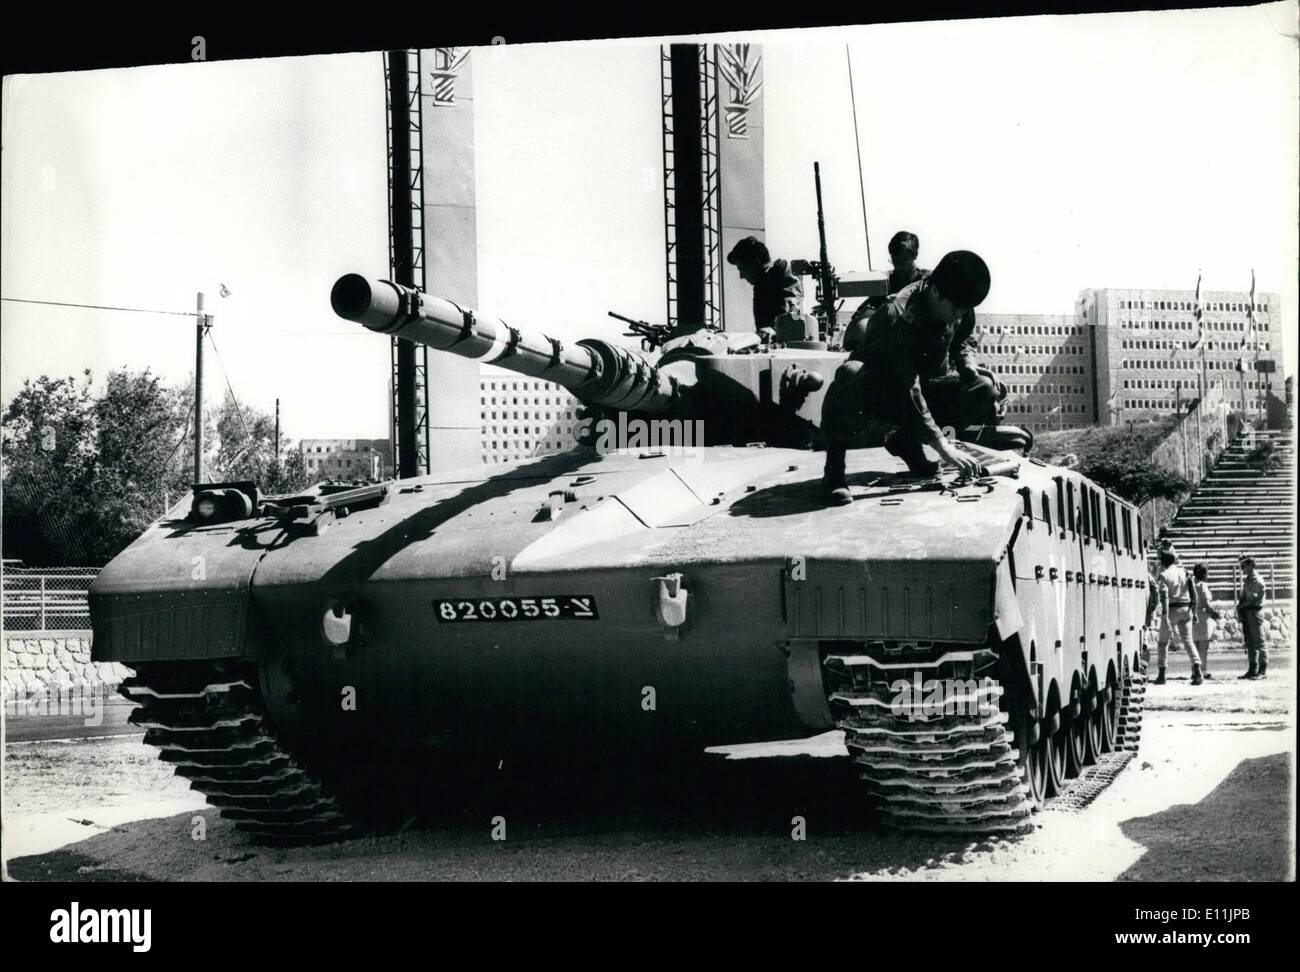 May 05, 1978 - Israel Shows off Its New Tank. The latest weapon in the Israel Army is this new 56-ton tank, with Stock Photo